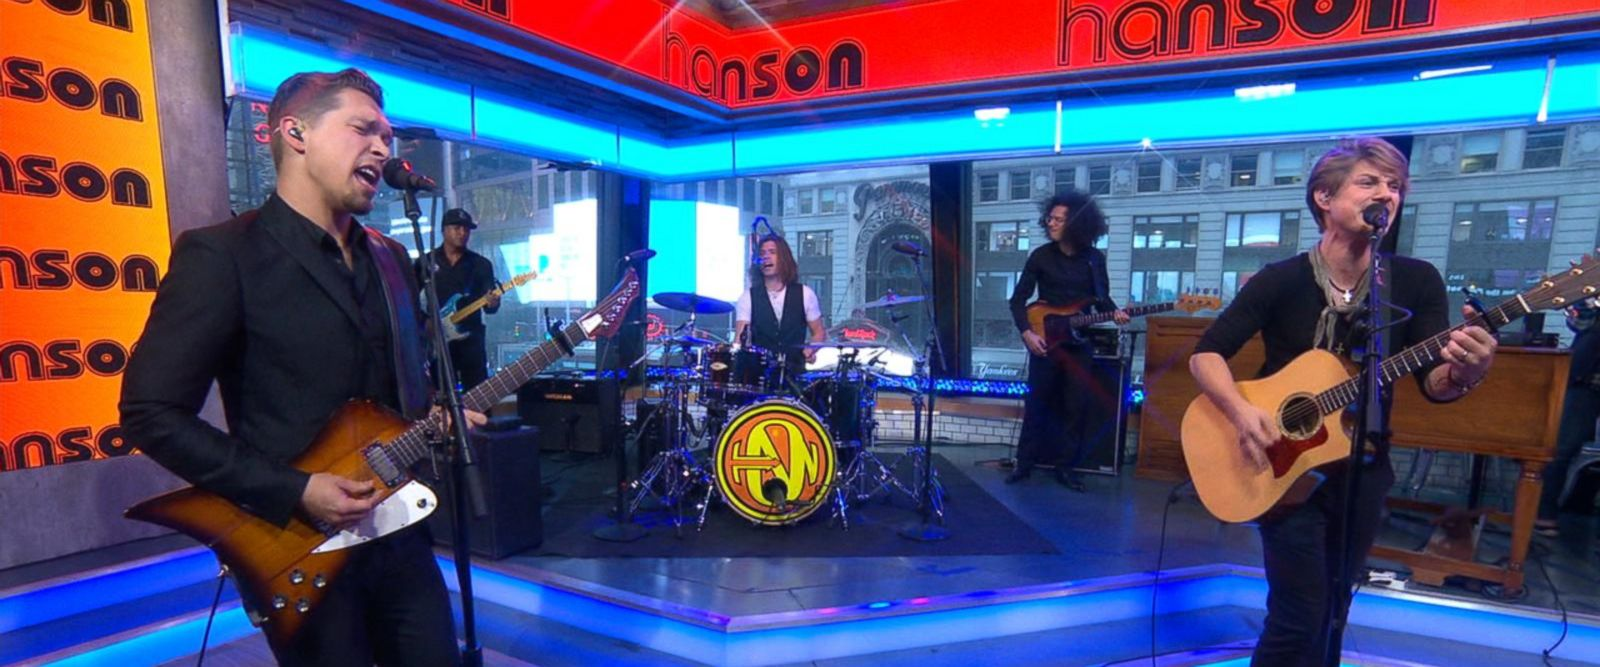 VIDEO: Hanson performs 'I Was Born' on 'GMA'